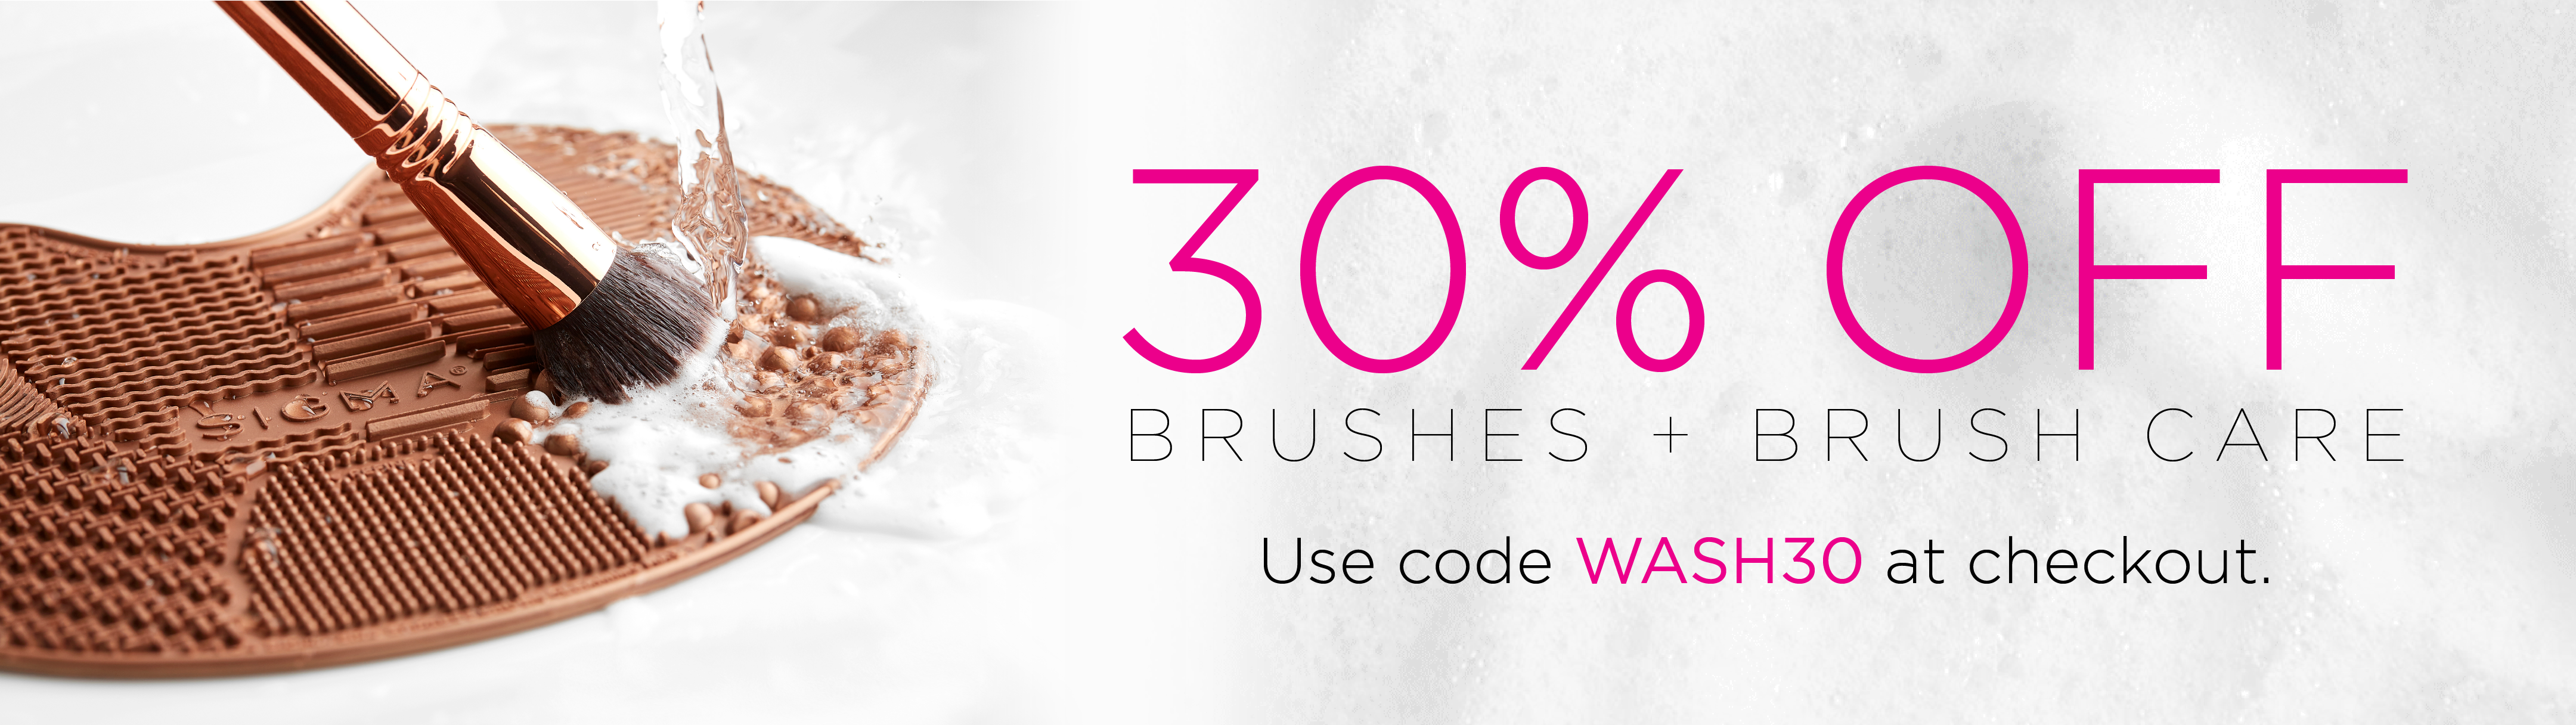 30% Off Brushes + Brush Care with code WASH30